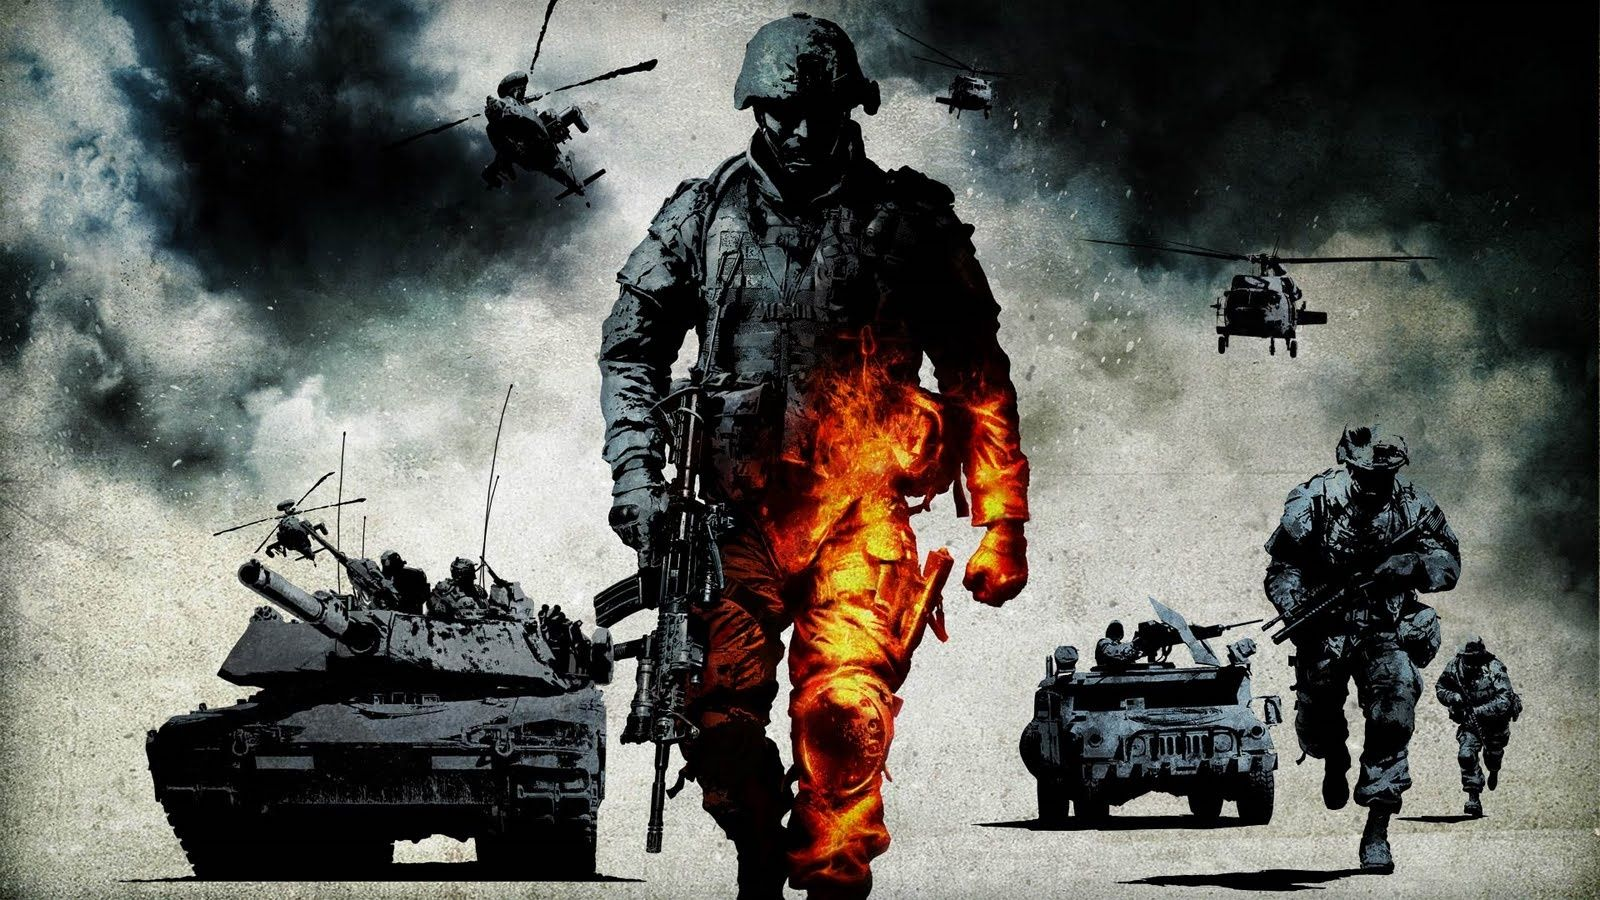 10 Latest Wallpaper Hd Games 2015 Full Hd 1080p For Pc: Battlefield Vai Ganhar Série De TV